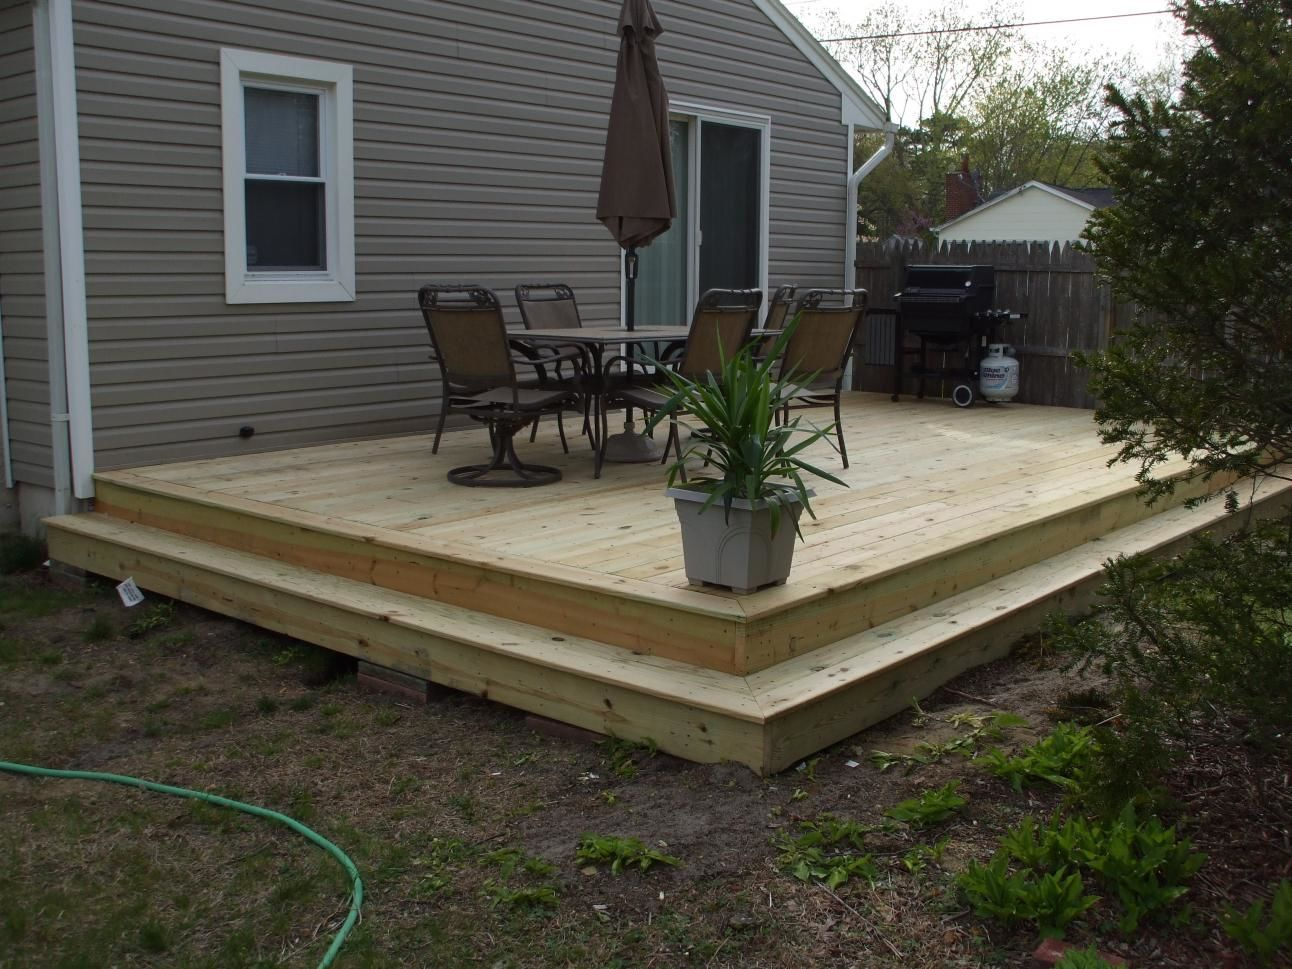 How To Build Ground Level Wood Deck Without Posts Decks Backyard